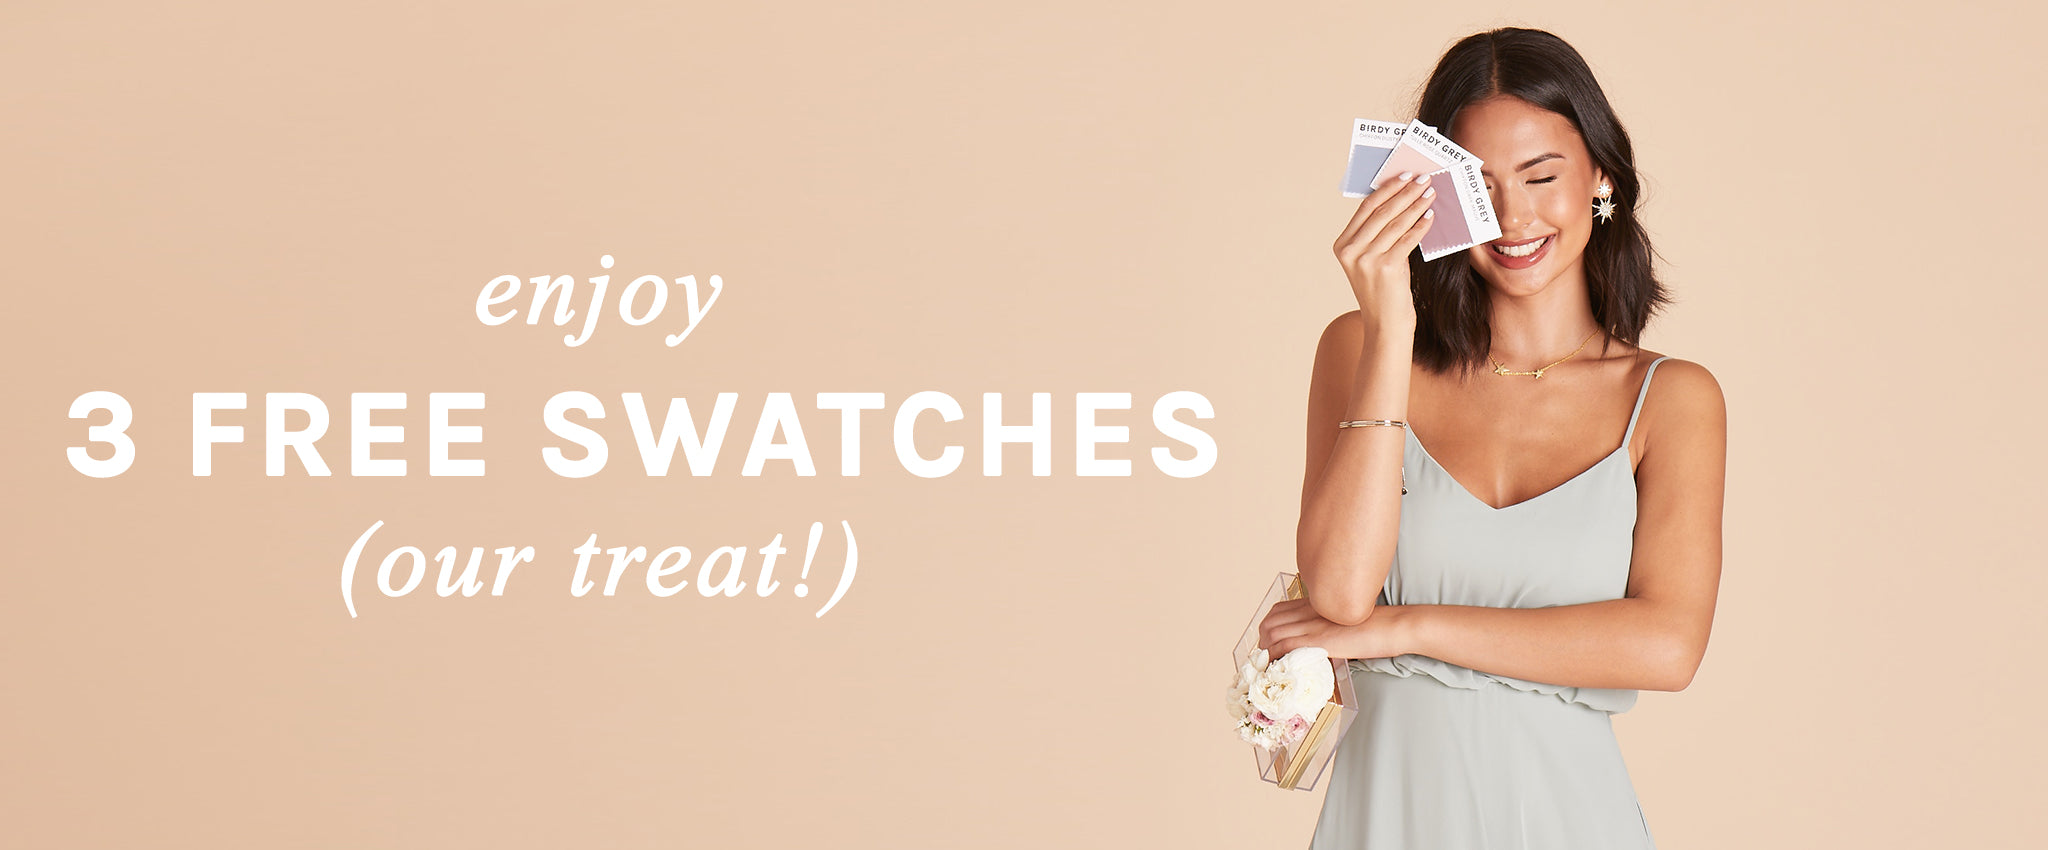 Enjoy 3 complimentary swatches, on us!